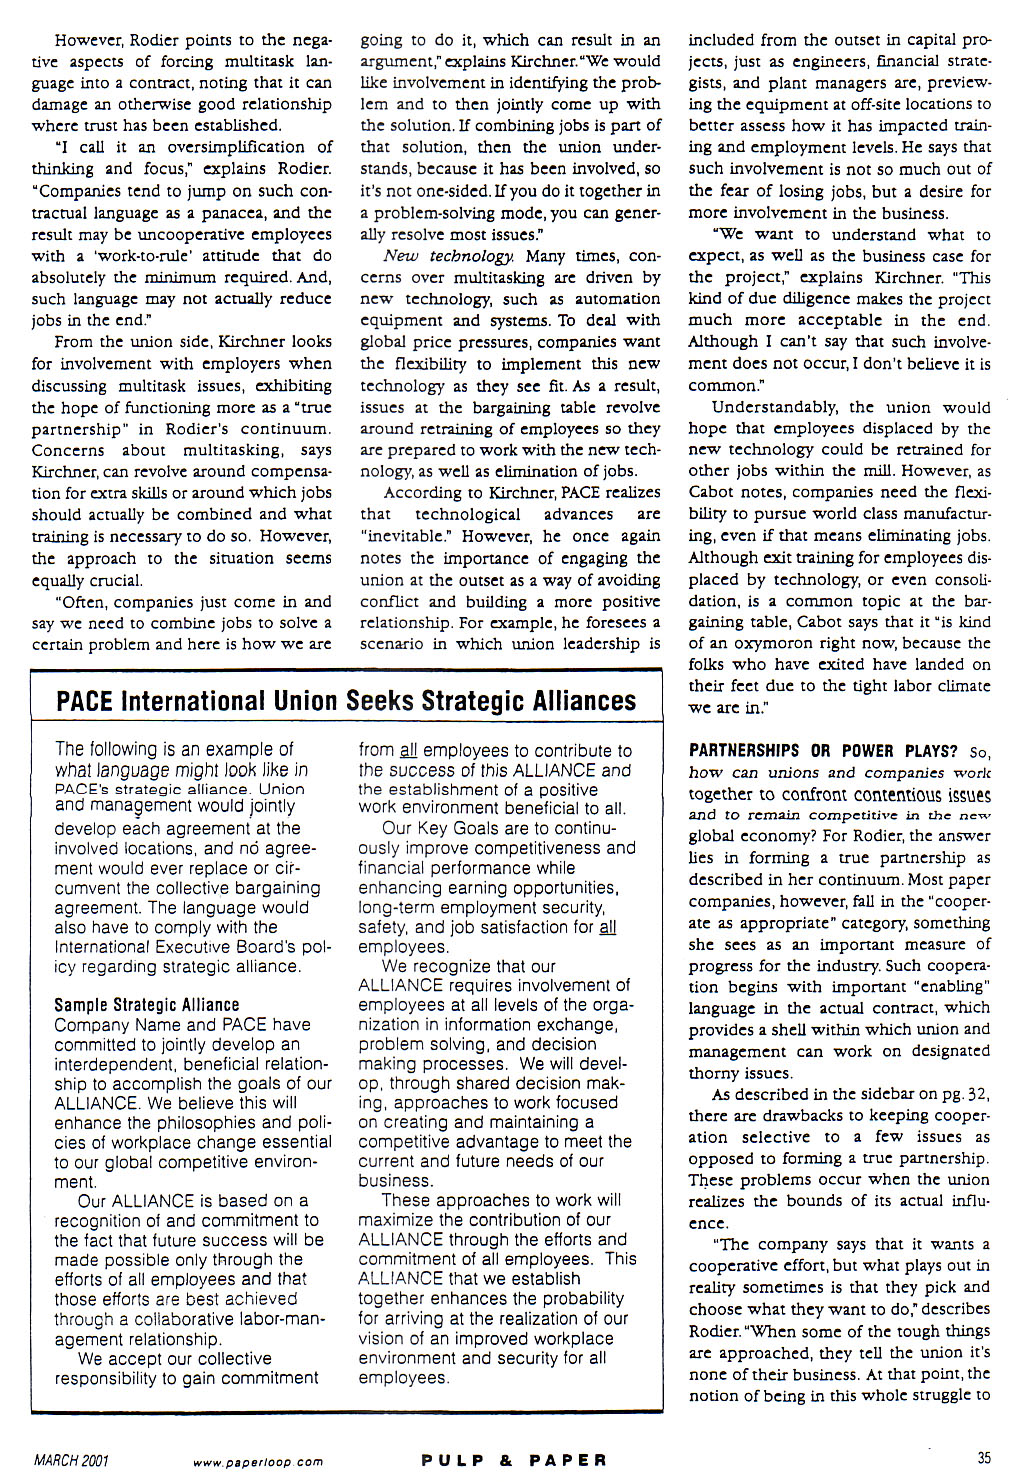 pulp & paper-march 2001-labormanagement build better relations driven by globalization, profitability concerns  page 3.jpg